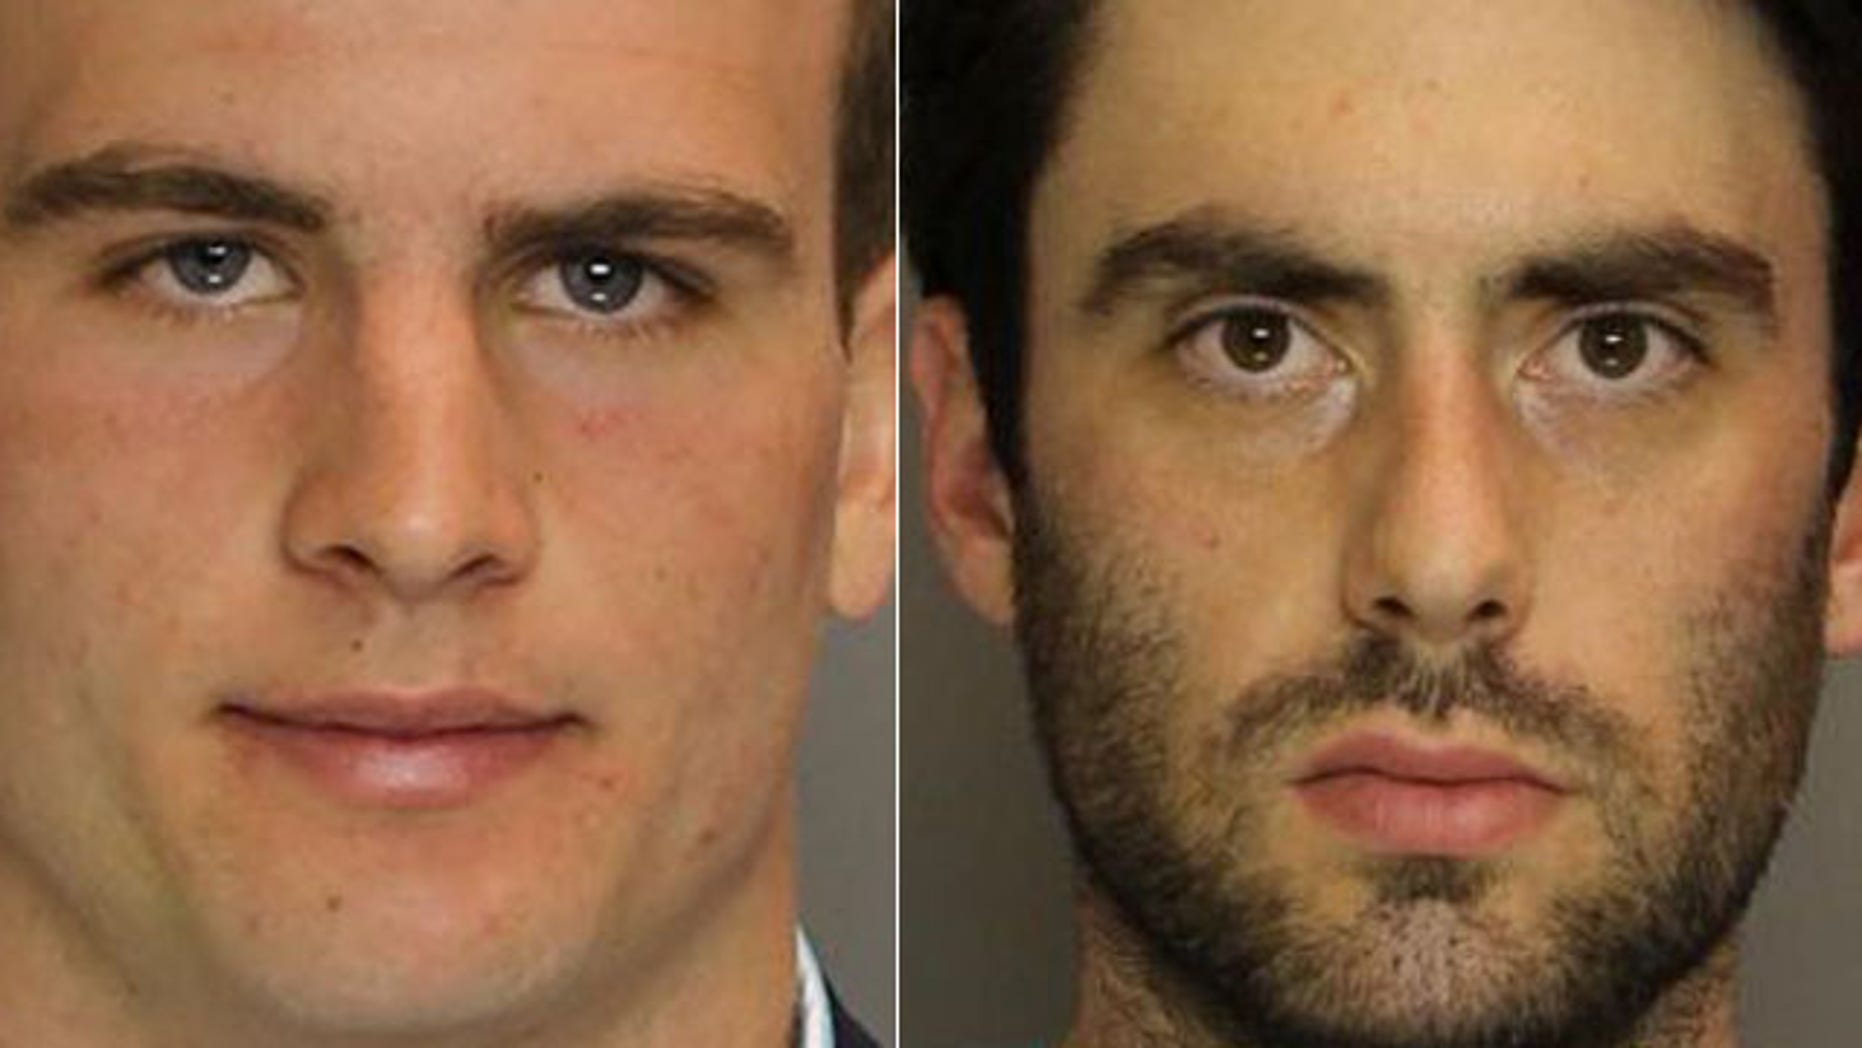 Montgomery County prosecutors identified the leaders of the operation as 25-year-old Neil Scott, right, and 18-year-old Timothy Brooks.